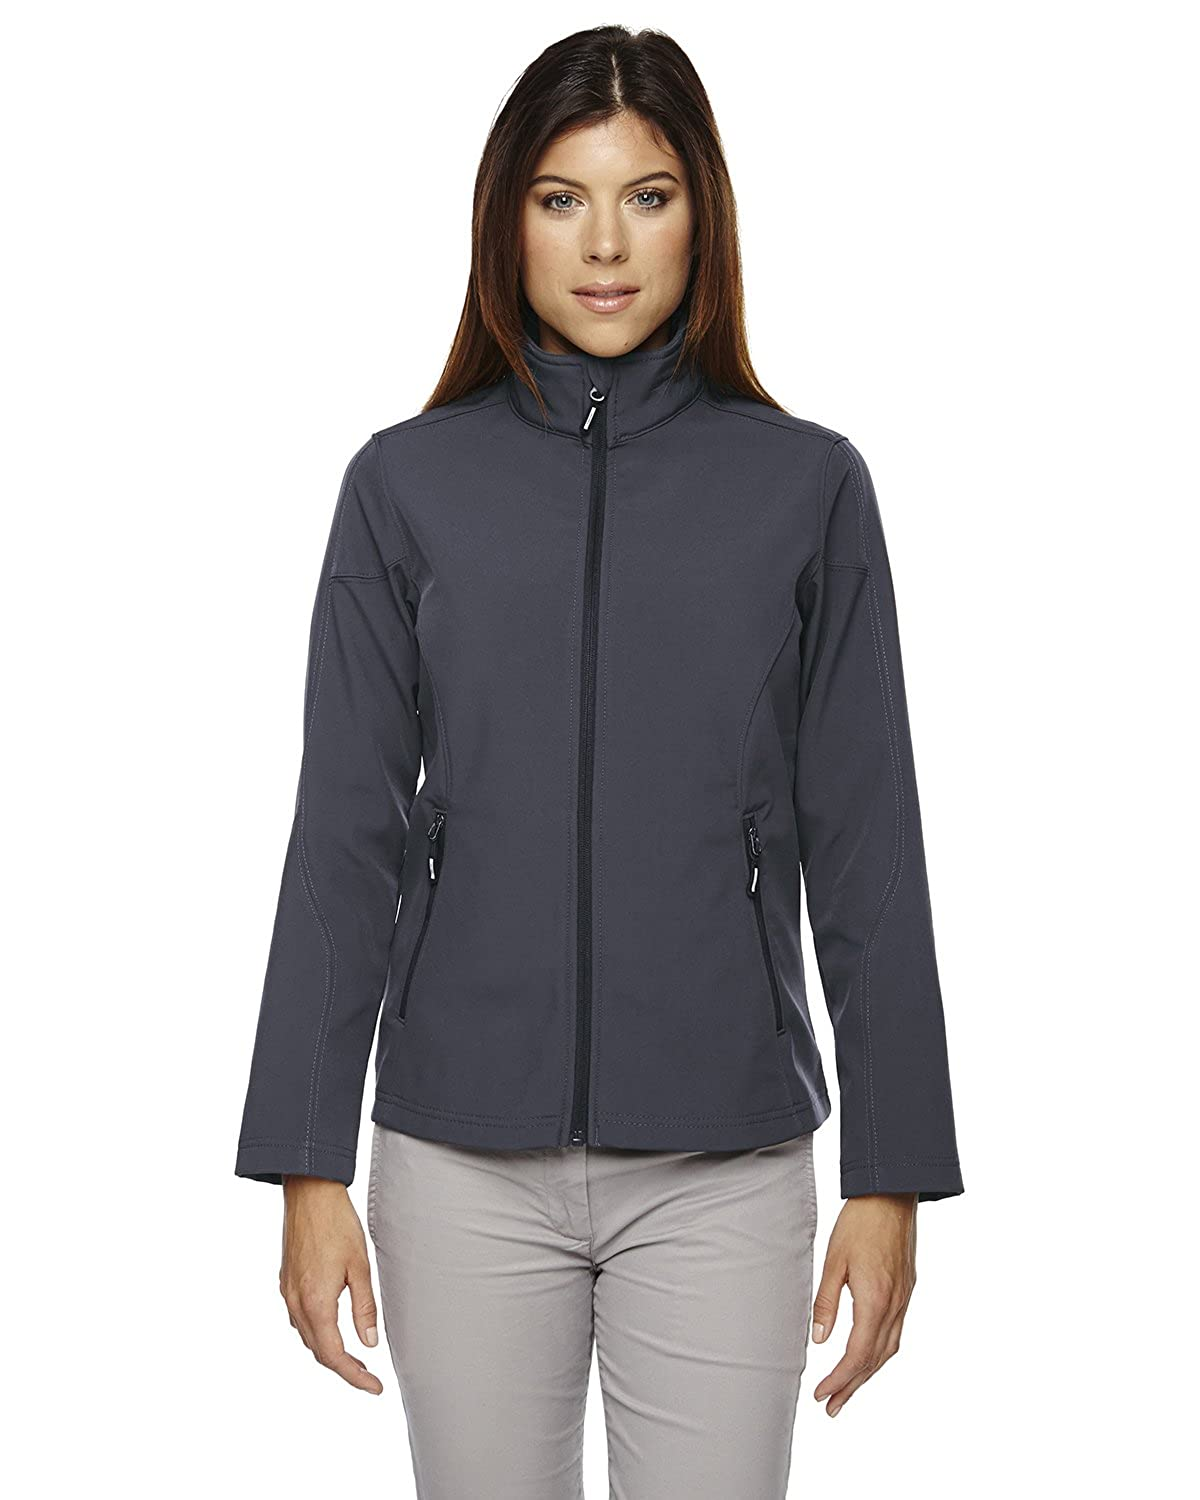 Ash City Core 365 78184 - CRUISE TM LADIES' 2-LAYER FLEECE BONDED SOFT SHELL JACKET  Ash City - Core 365 M10213